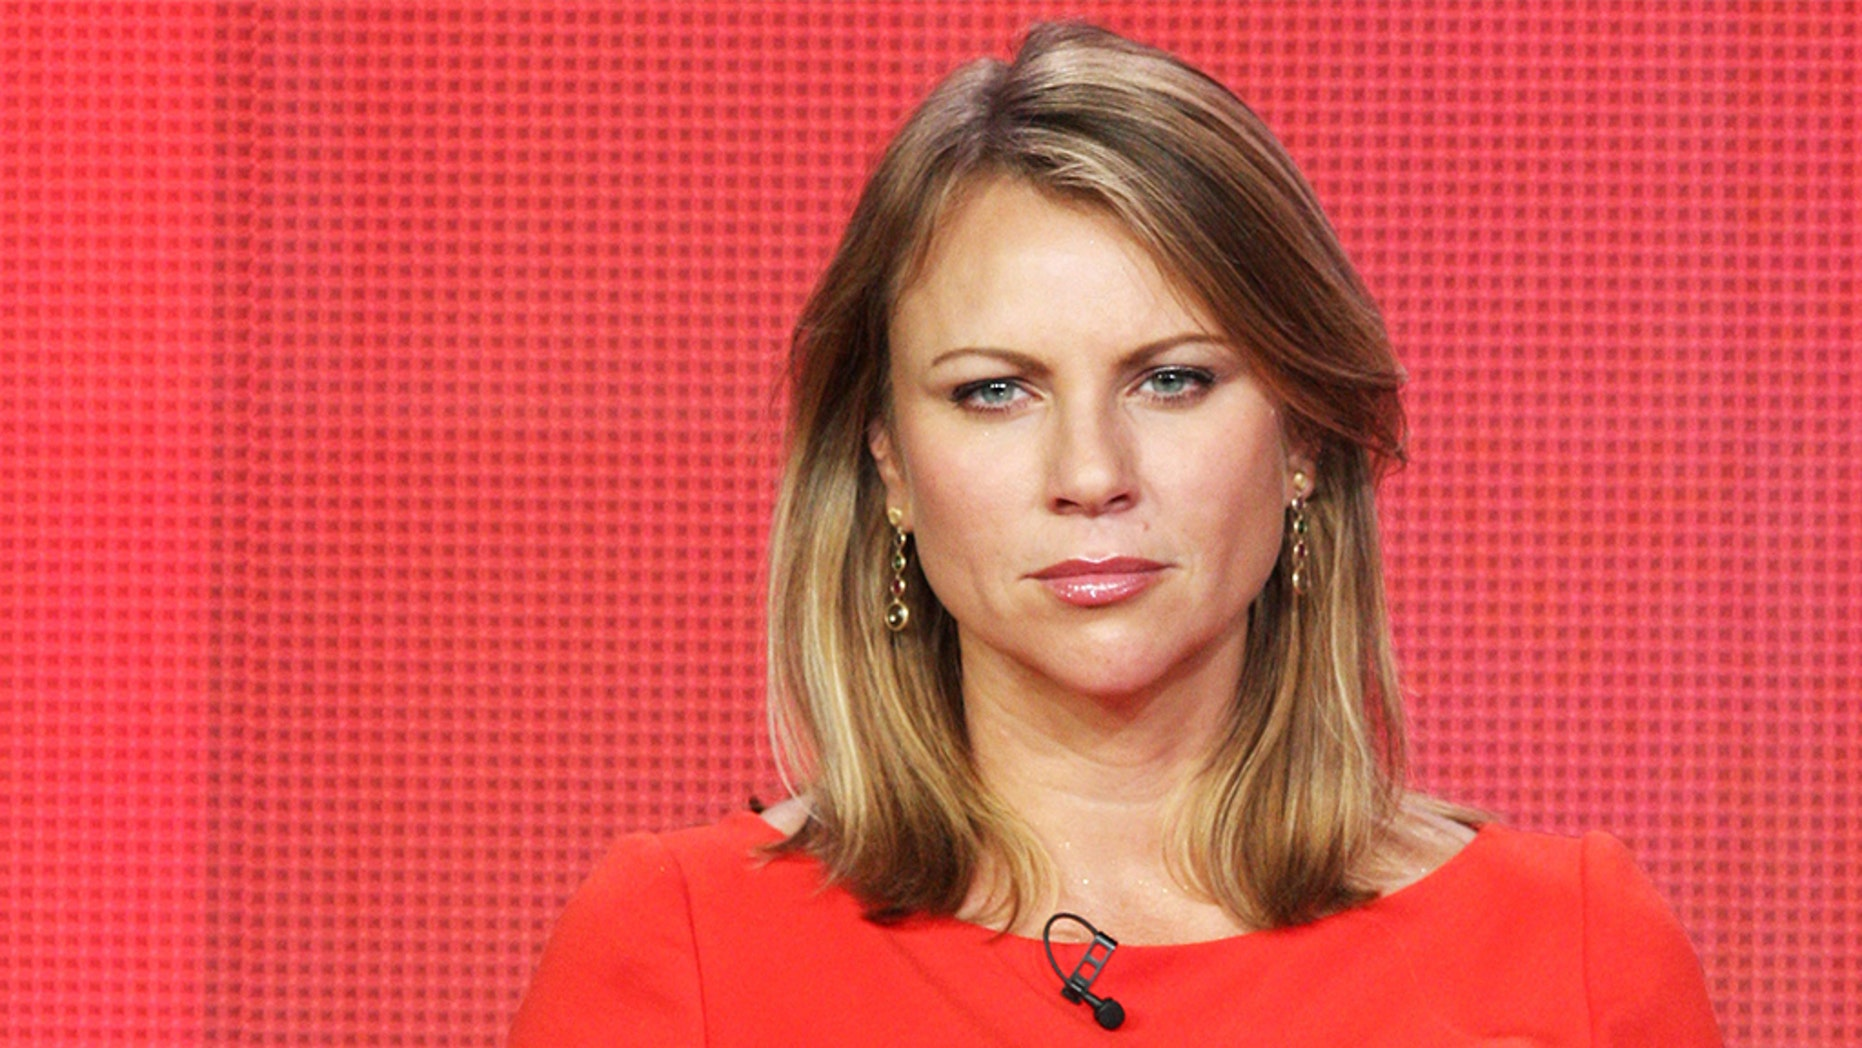 """""""It's no secret that the vast majority of academic institutions in this country are liberal,"""" former CBS News correspondent Lara Logan said in an interview with Fox News that will air Sunday. (Tommaso Boddi/WireImage)"""